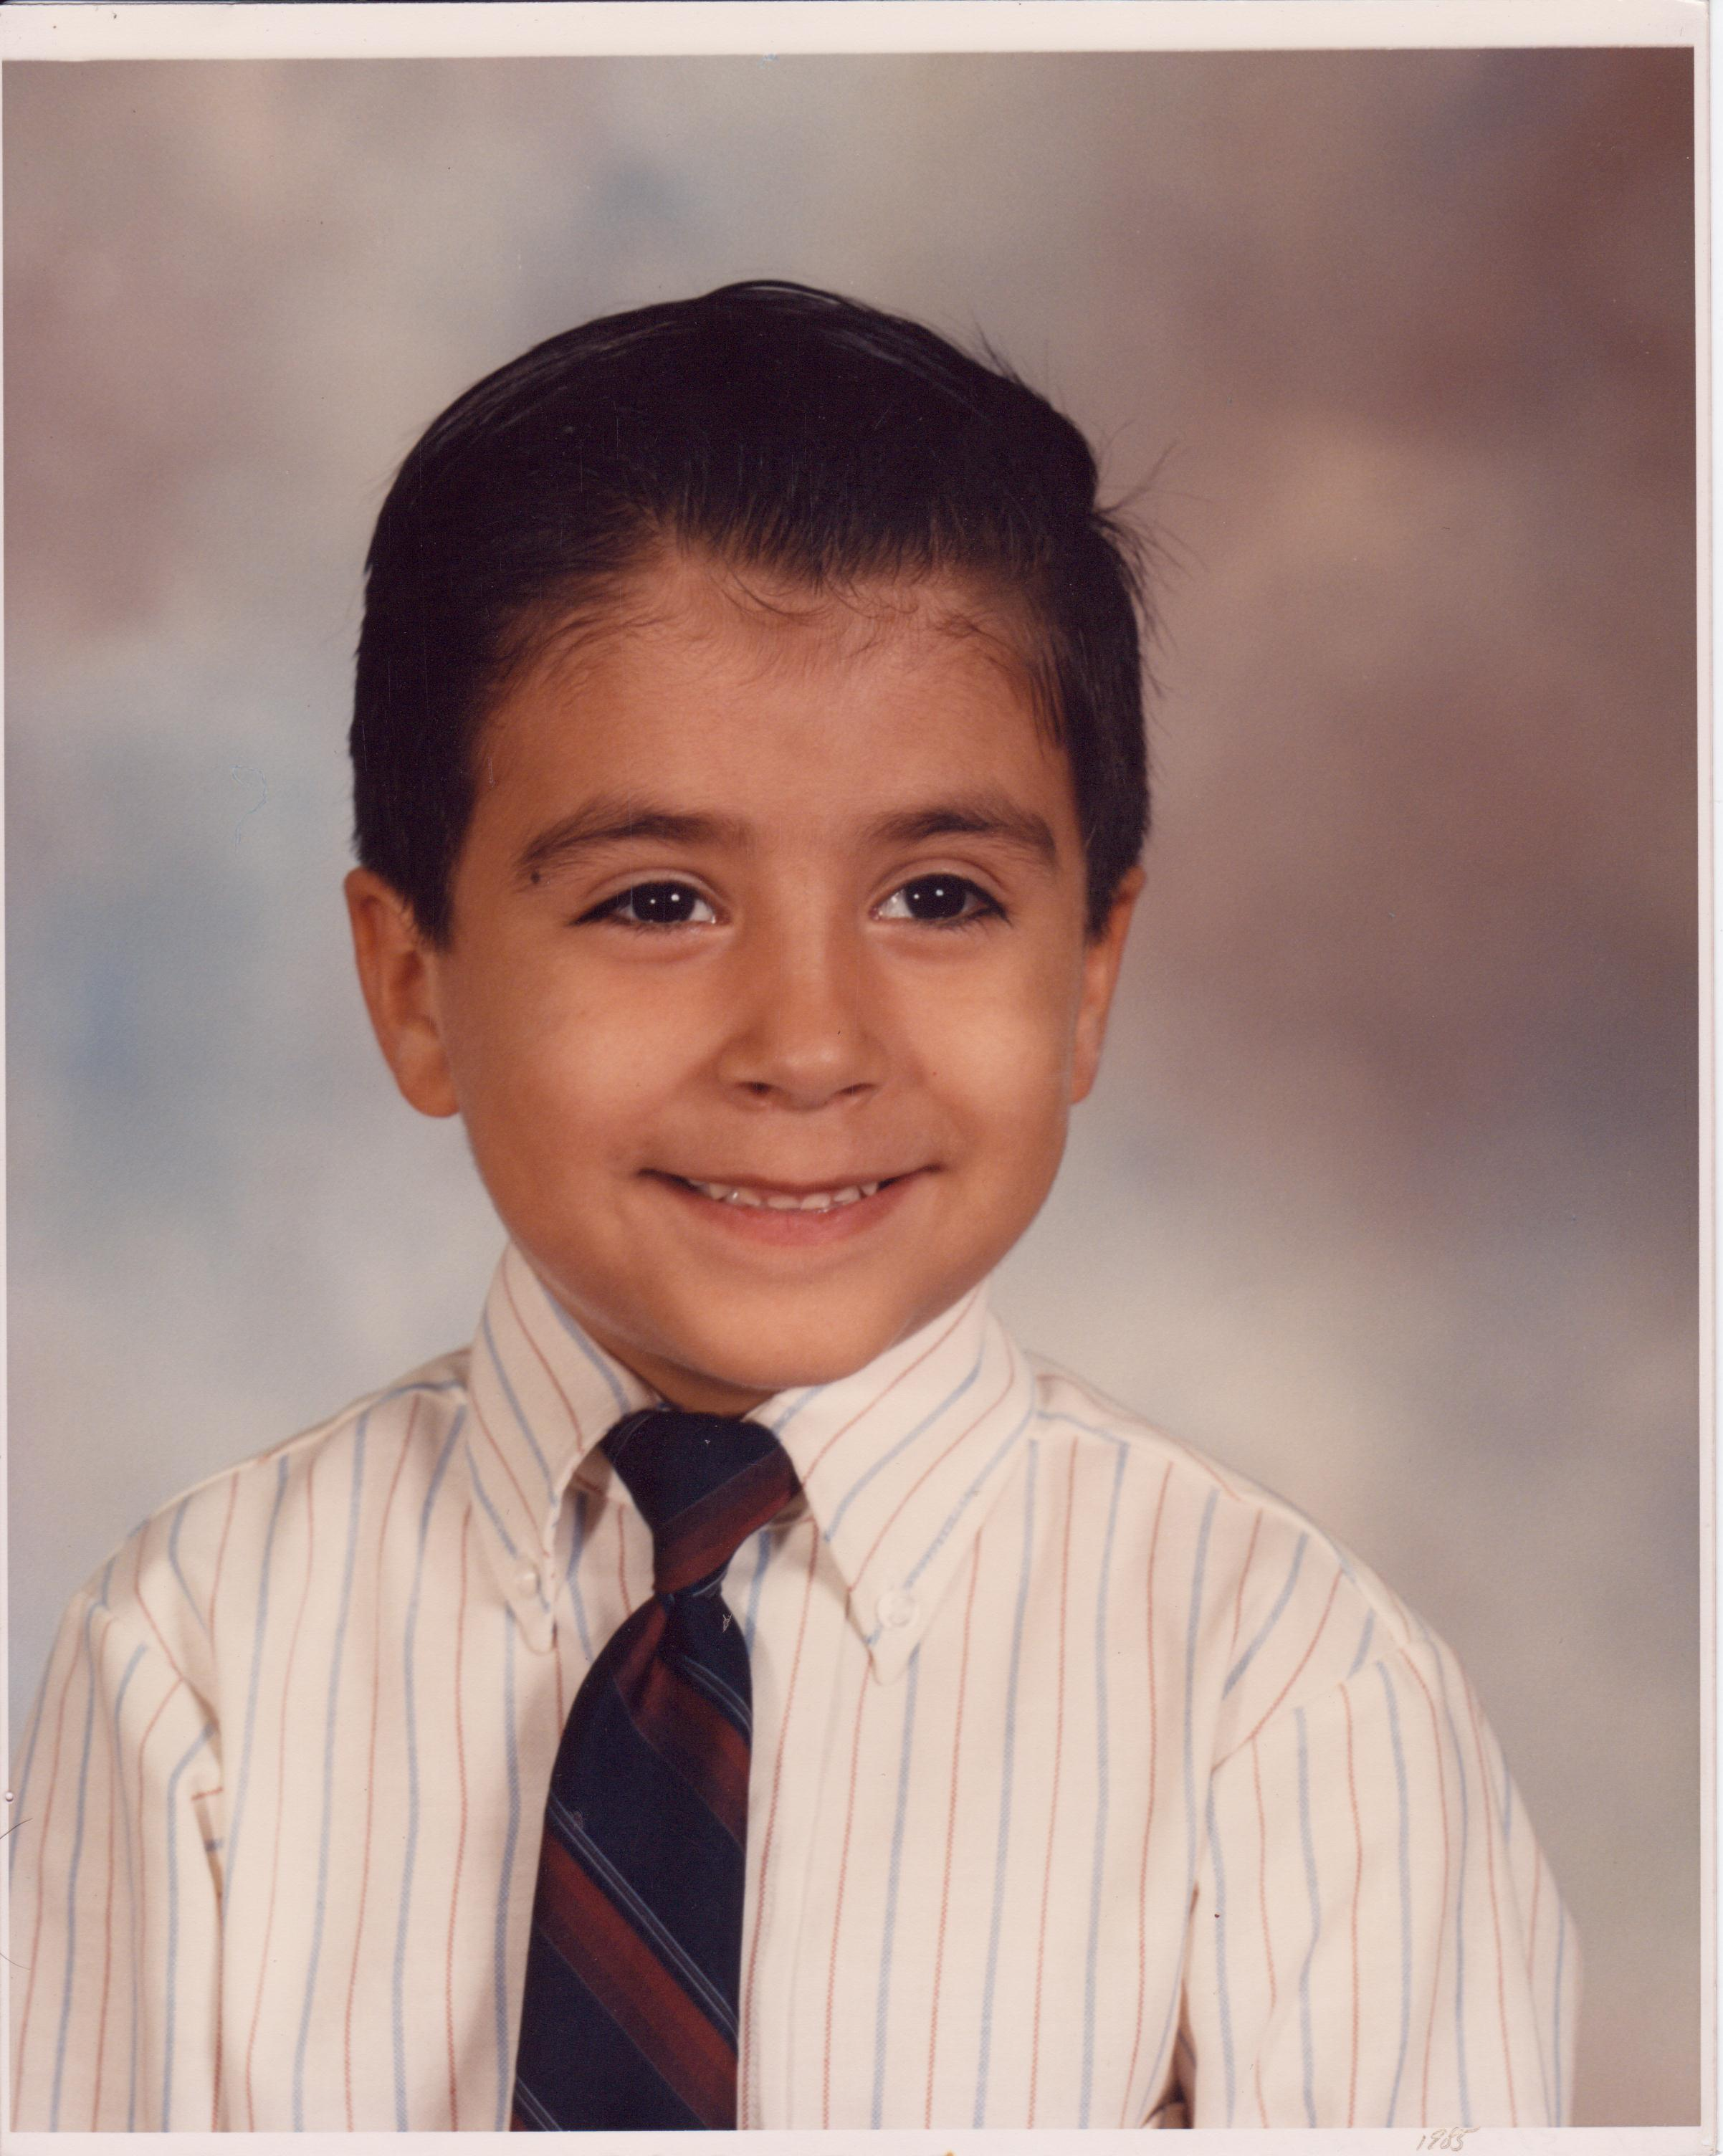 baby pictures 2 001.jpg